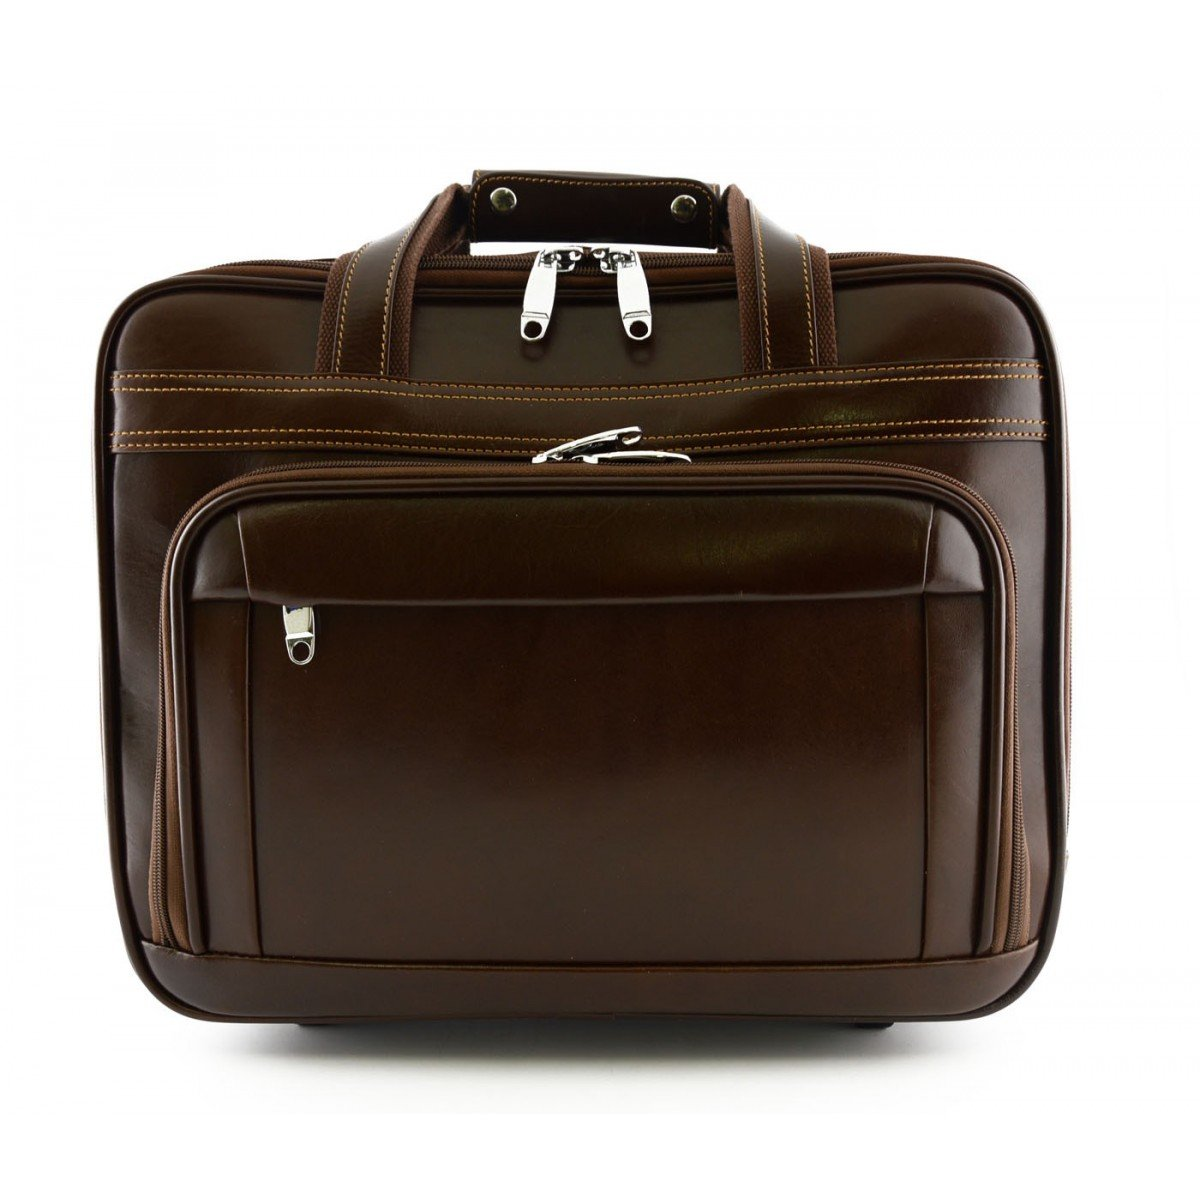 Made In Italy Leather Business Trolley With 3 Compartments Color Dark Brown - Travel Bag B01BM3JYC8